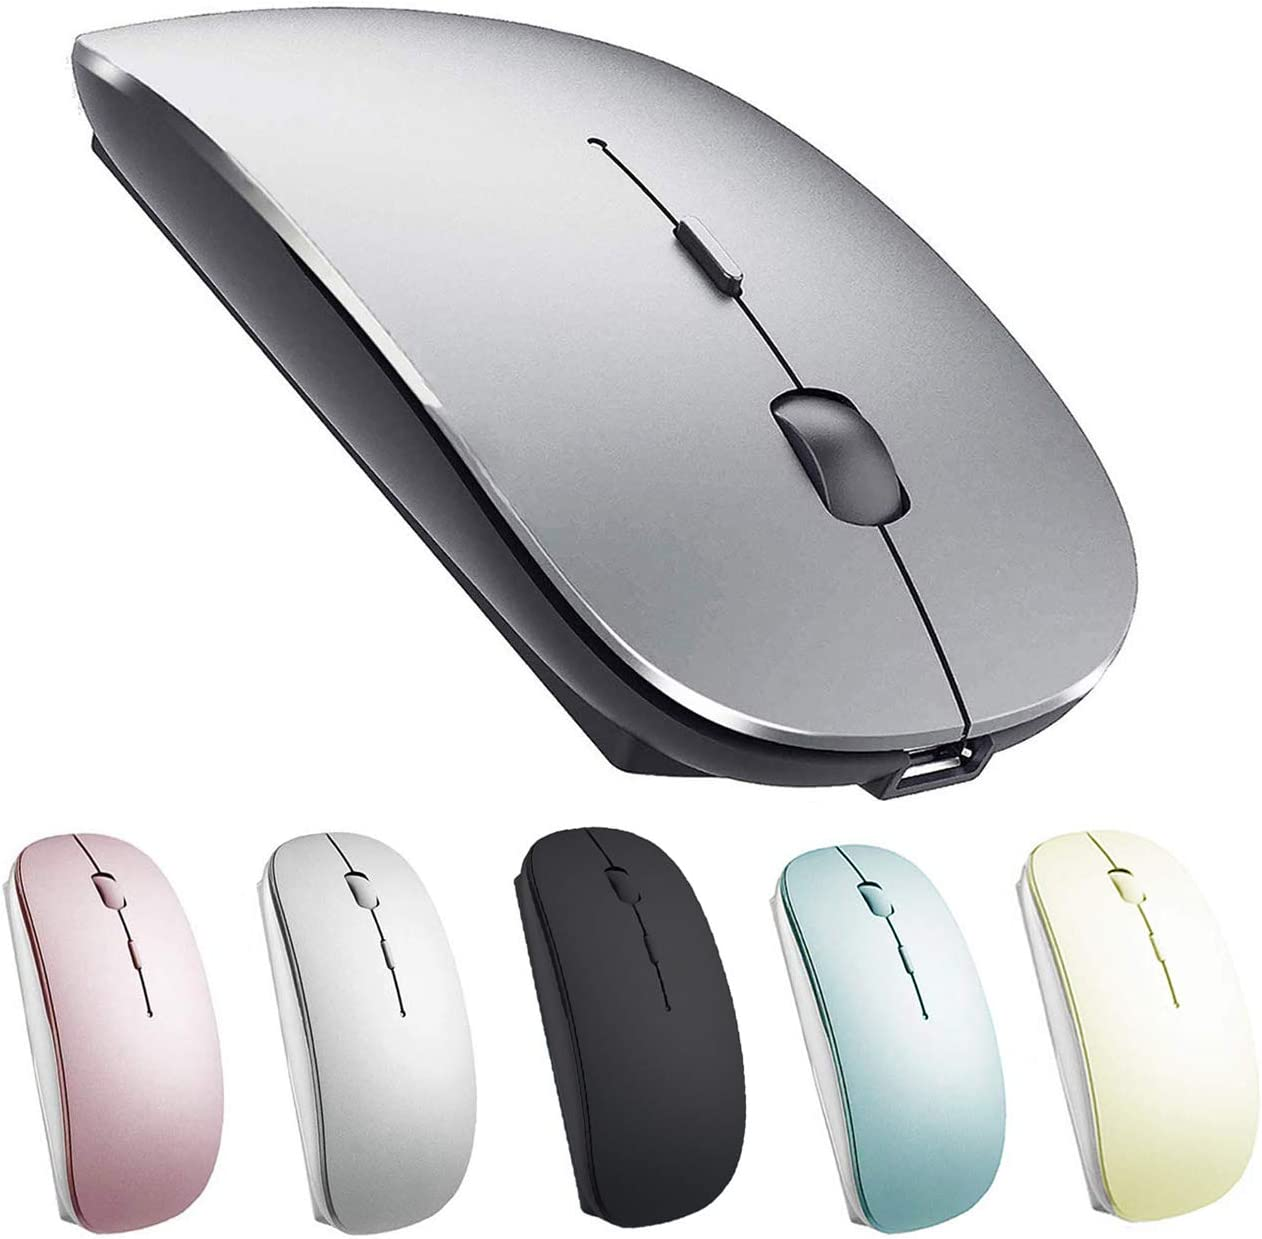 Rechargeable Bluetooth Mouse for Mac Laptop iPad Wireless Bluetooth Mouse for MacBook Pro MacBook Air Windows Notebook MacBook (Gray Black)